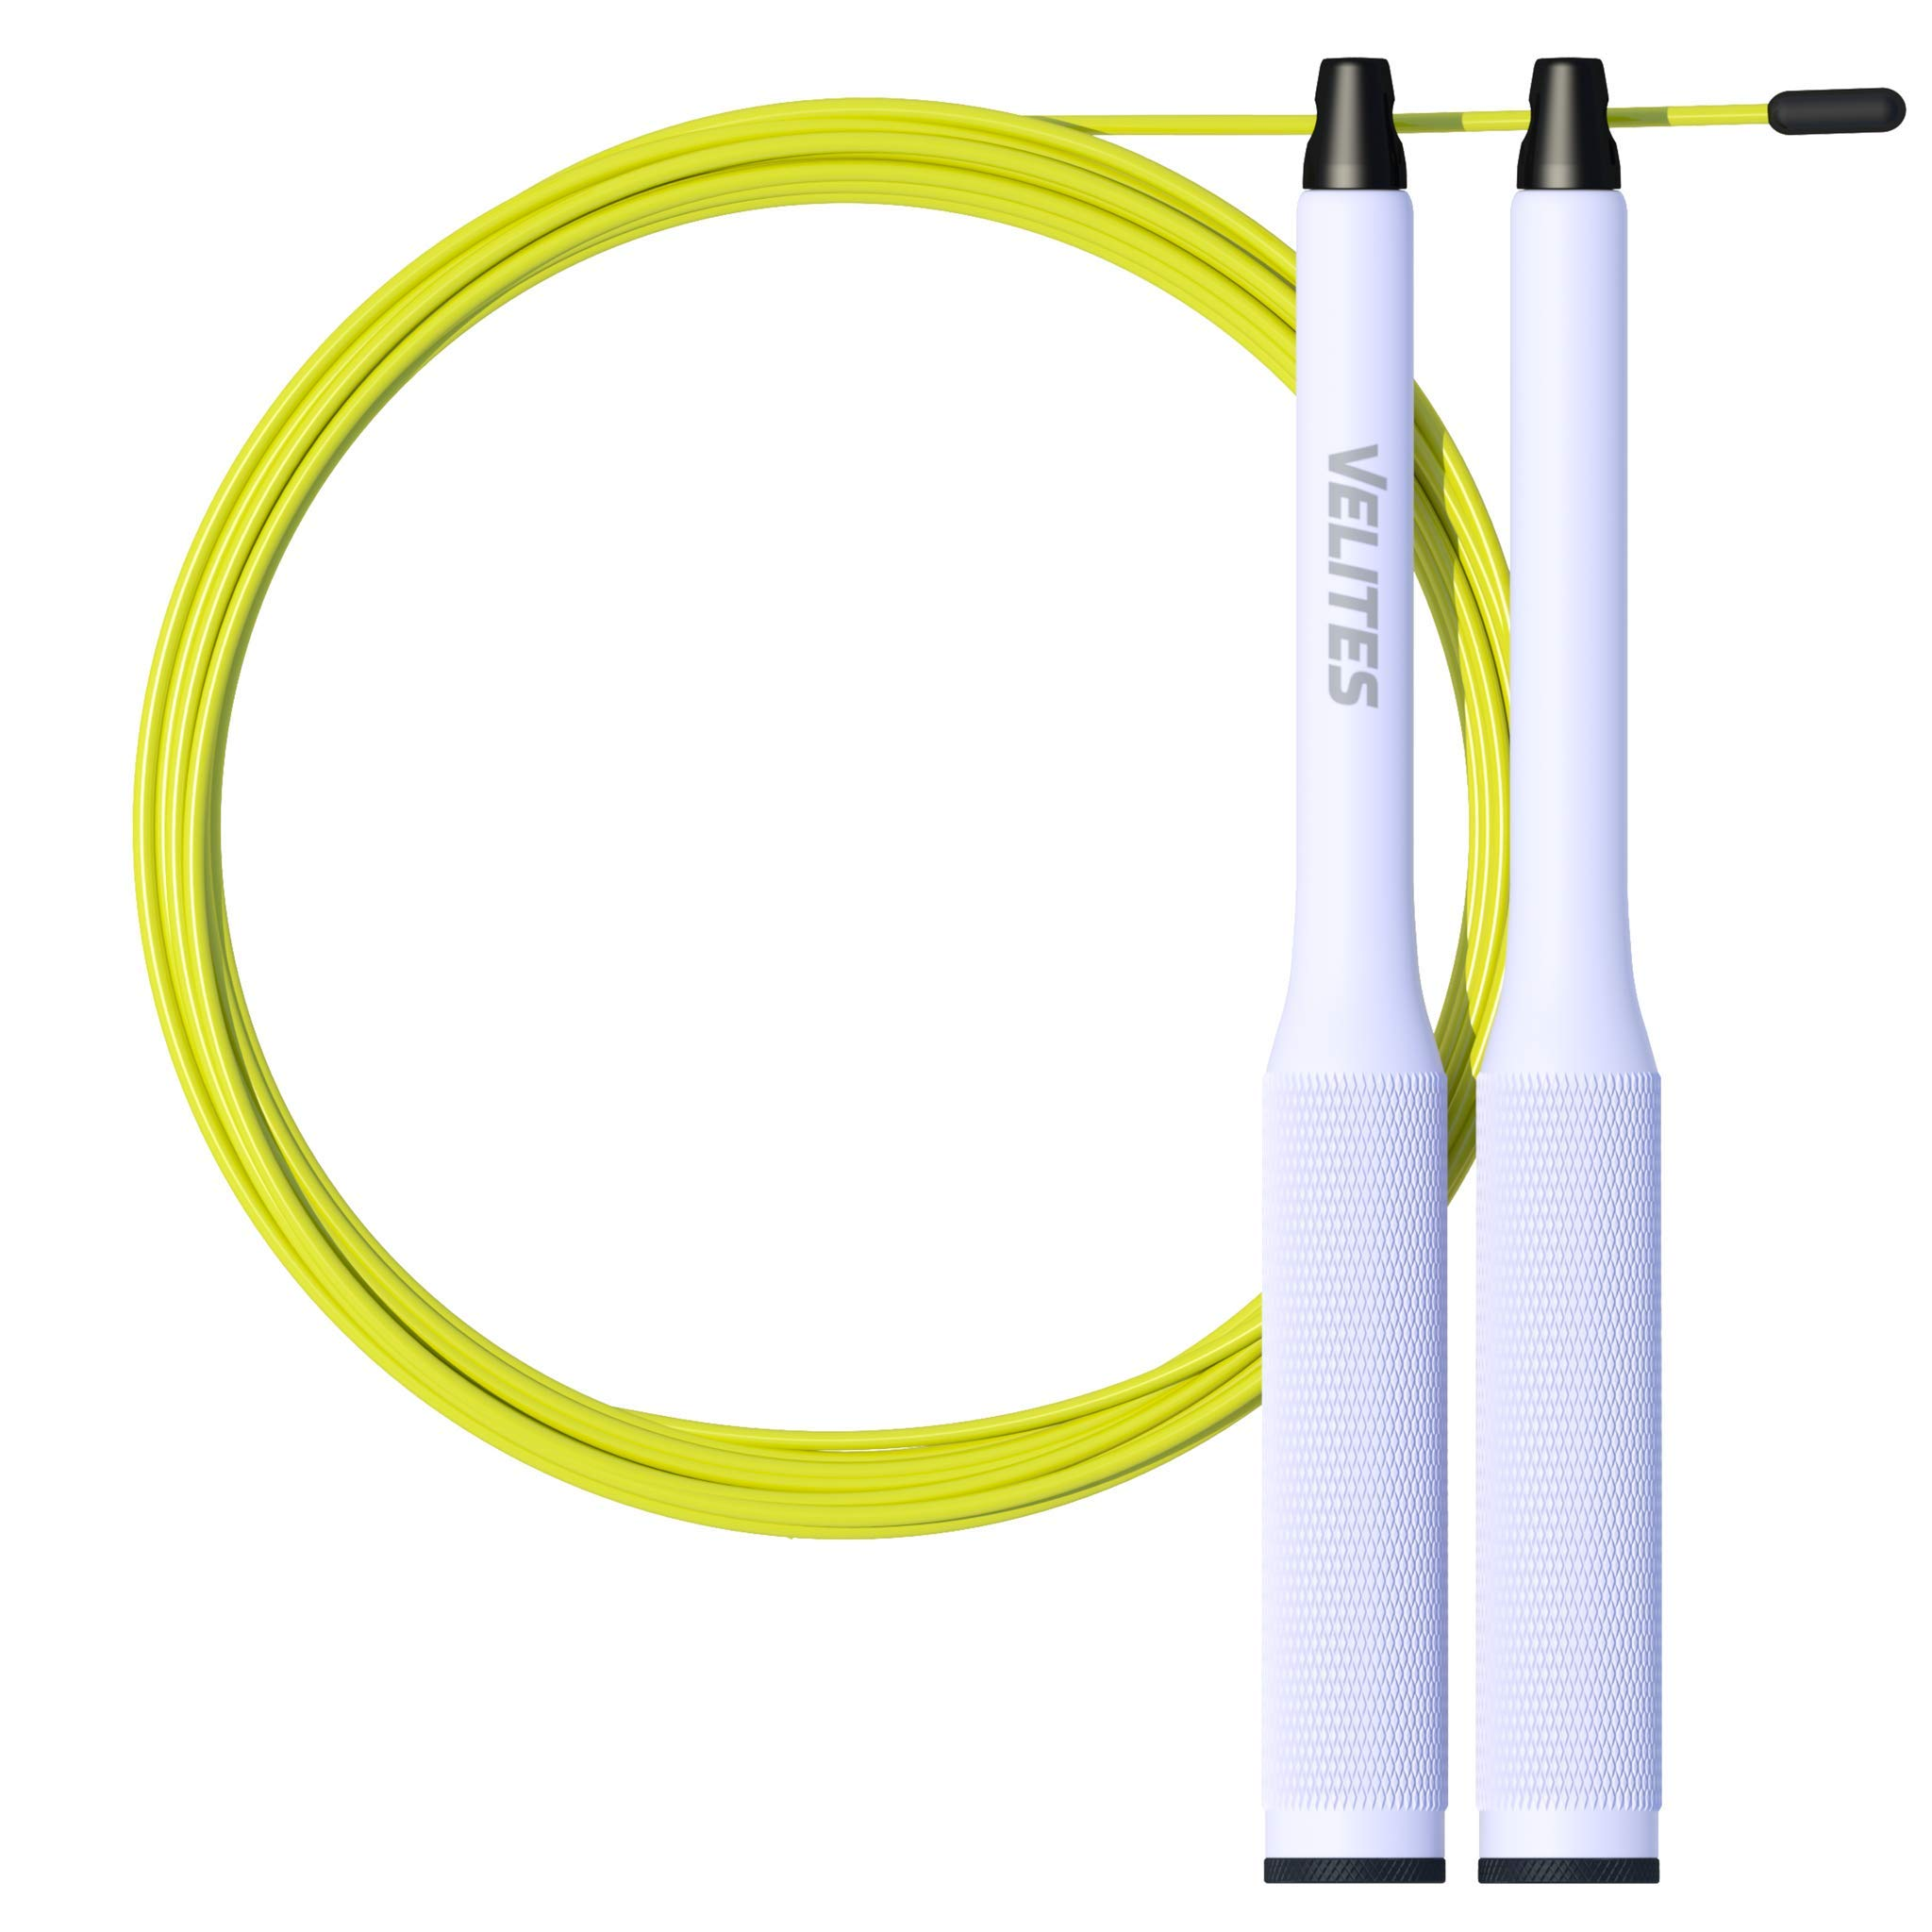 Velites Balanced Jump Rope for Crossfit, Boxing and Fitness Fire 2.0 Ideal for Double Jumps | Aluminum Speed Rope (ballasts not Included) (Silver)